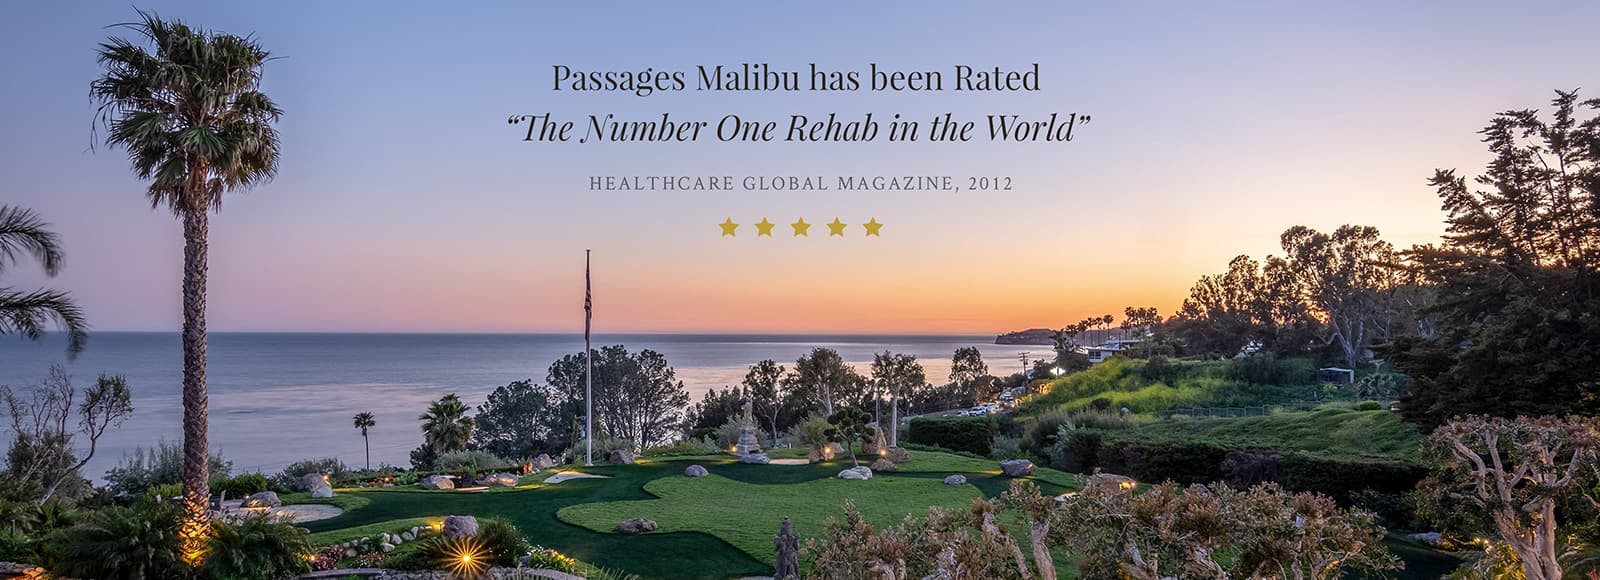 Passages Malibu - Rated the #1 Rehab in the World